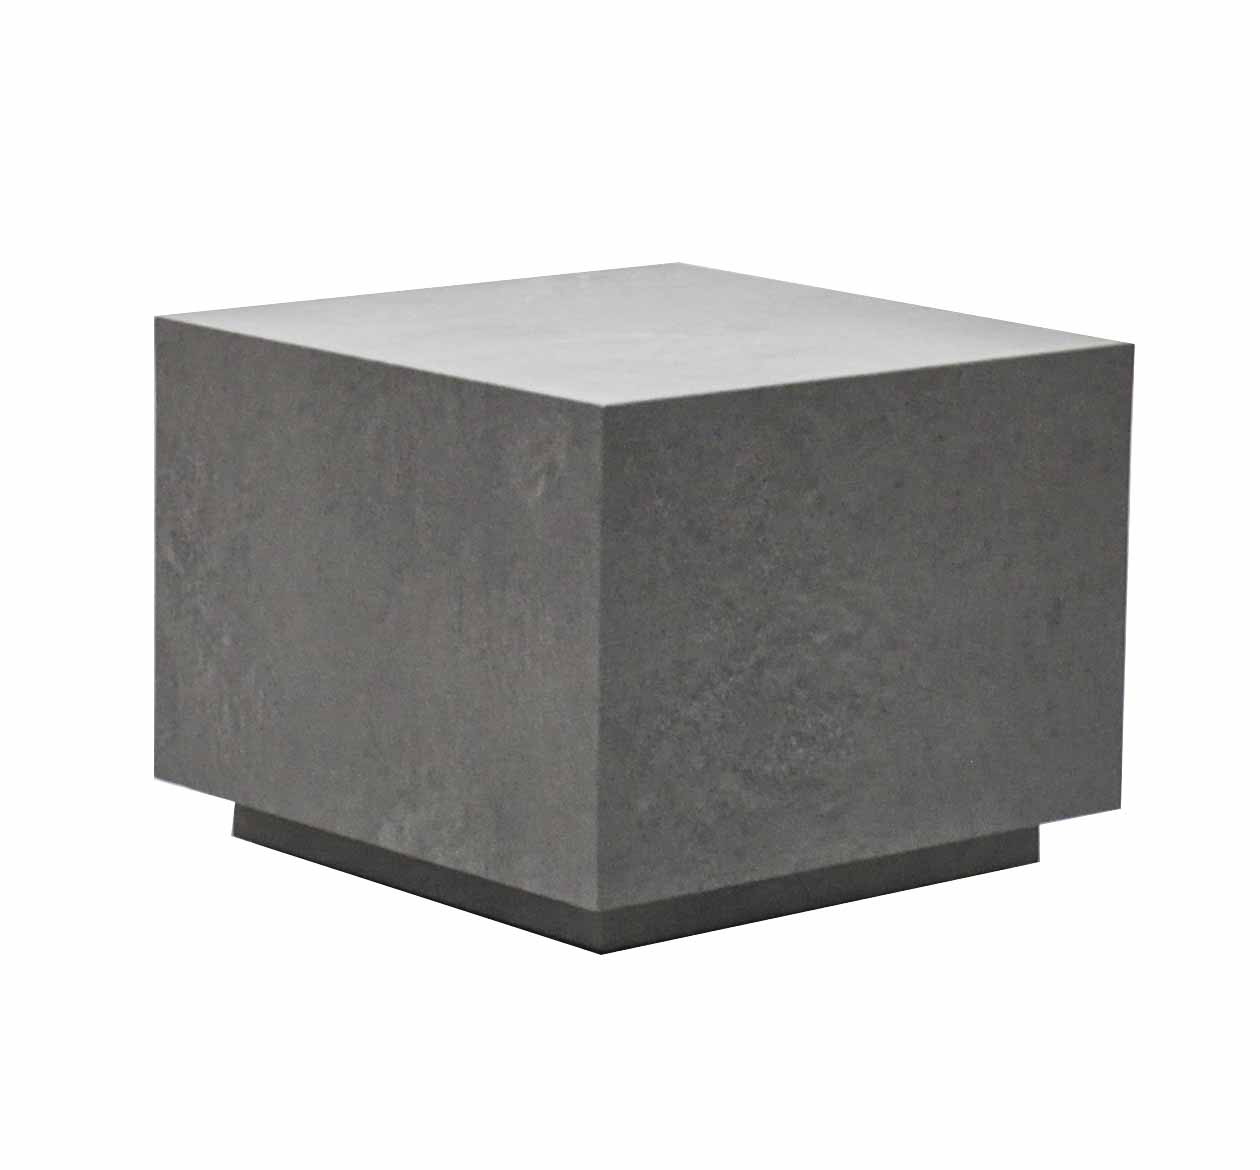 "FLR-23S 23"" Square End Table   23""x 23"" x 21"""